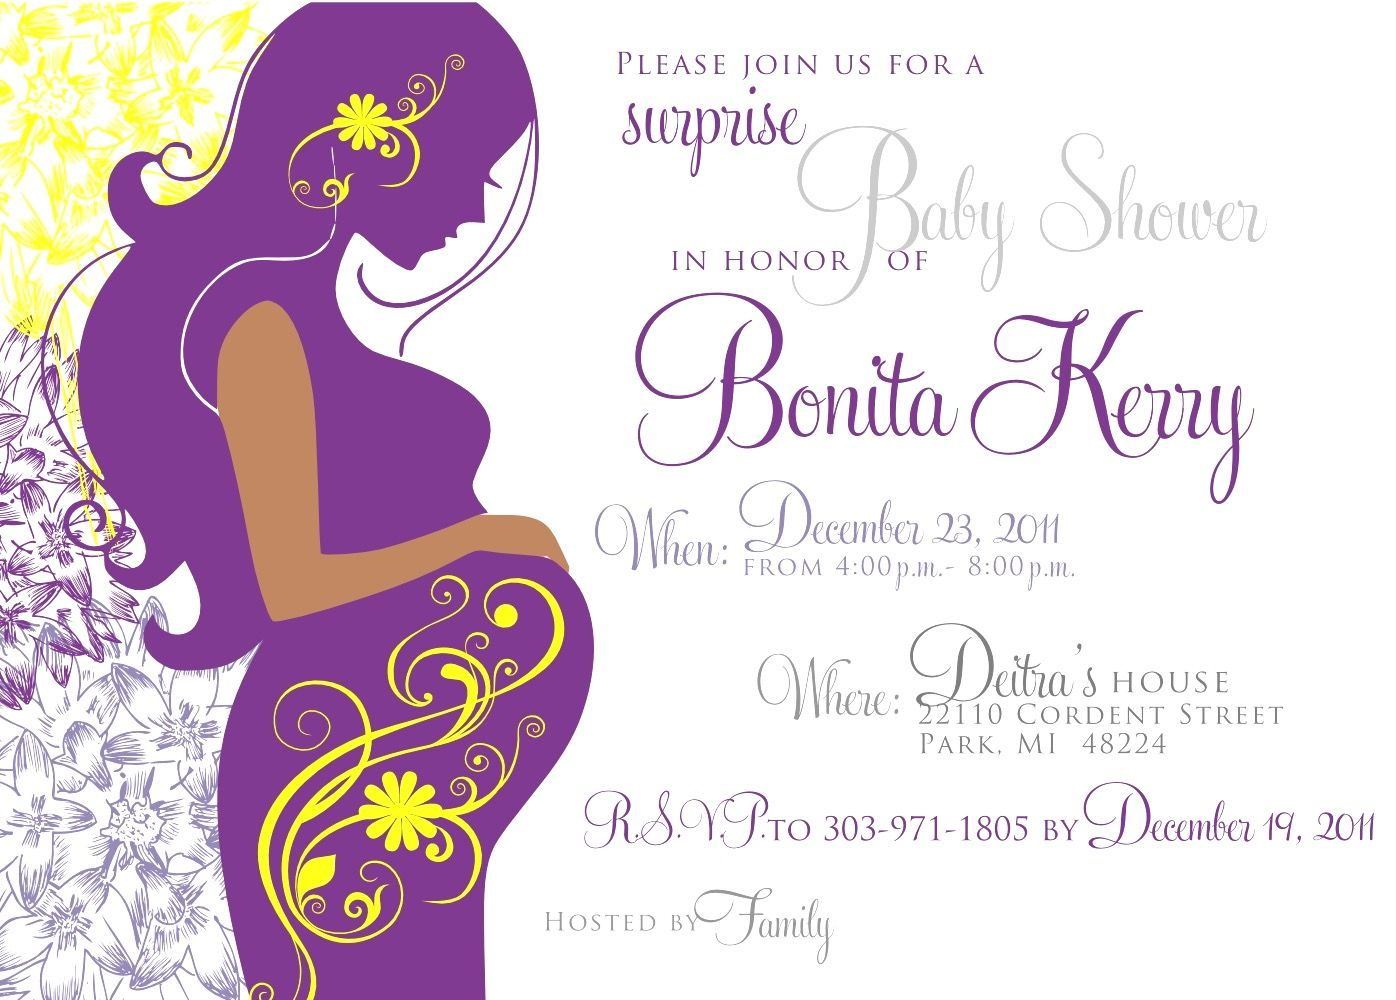 Baby Shower Invitations For Word Templates Cool Free Baby Shower Invitation Templates For Word Www Awalkinhell .